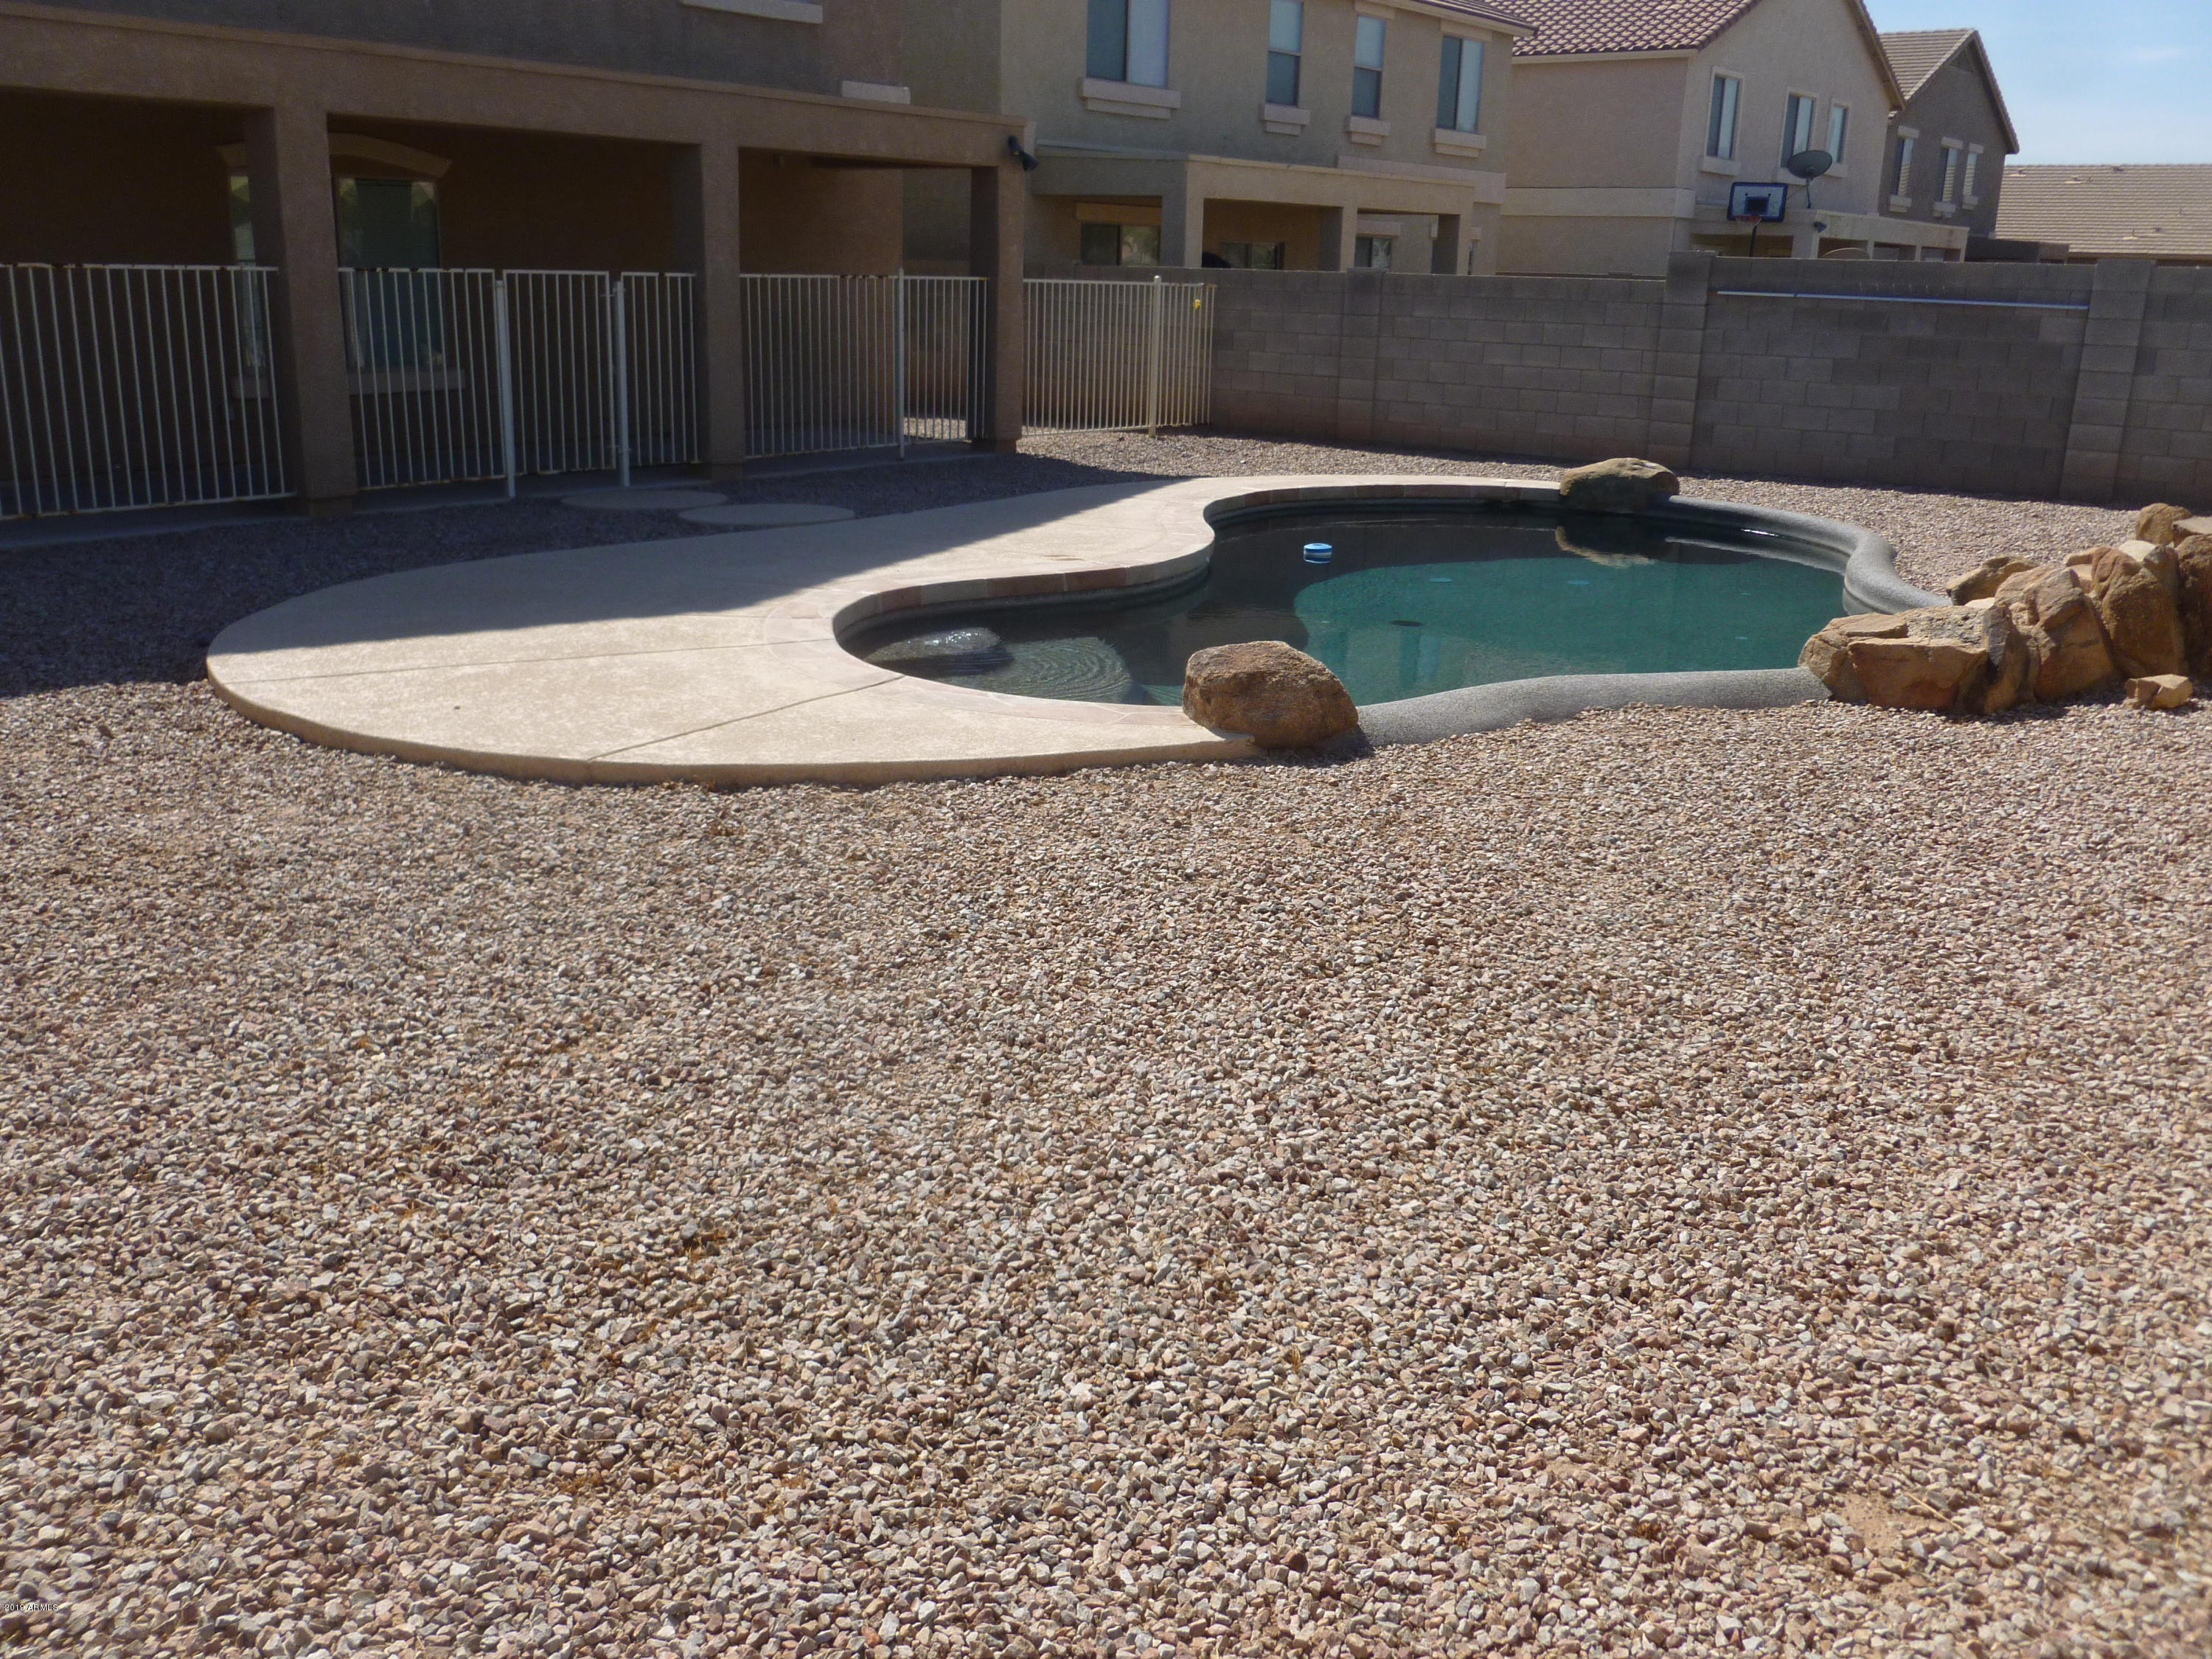 MLS 5967763 7614 S 69TH Drive, Laveen, AZ 85339 Laveen AZ Private Pool